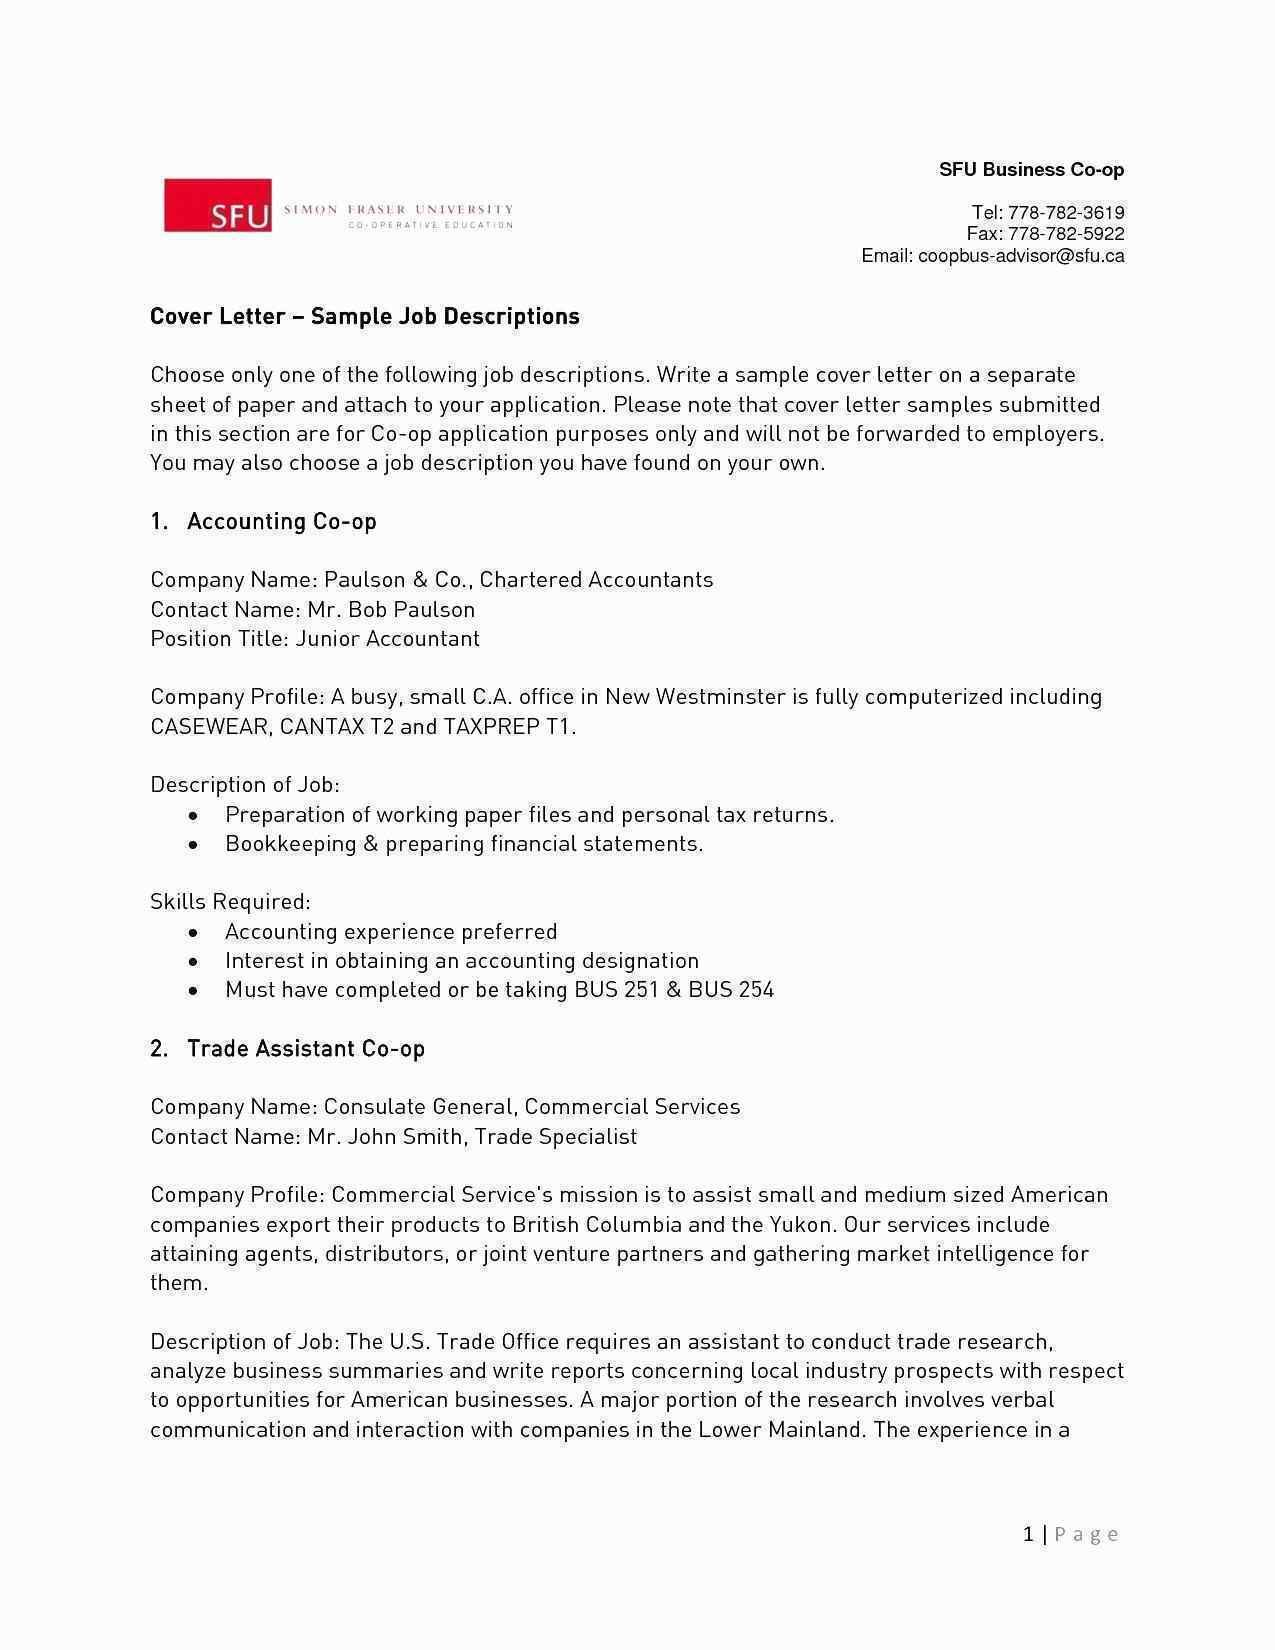 Education Administrative Assistant Cover Letter 25 Sample Cover Letter For Administrative Assistant Sample